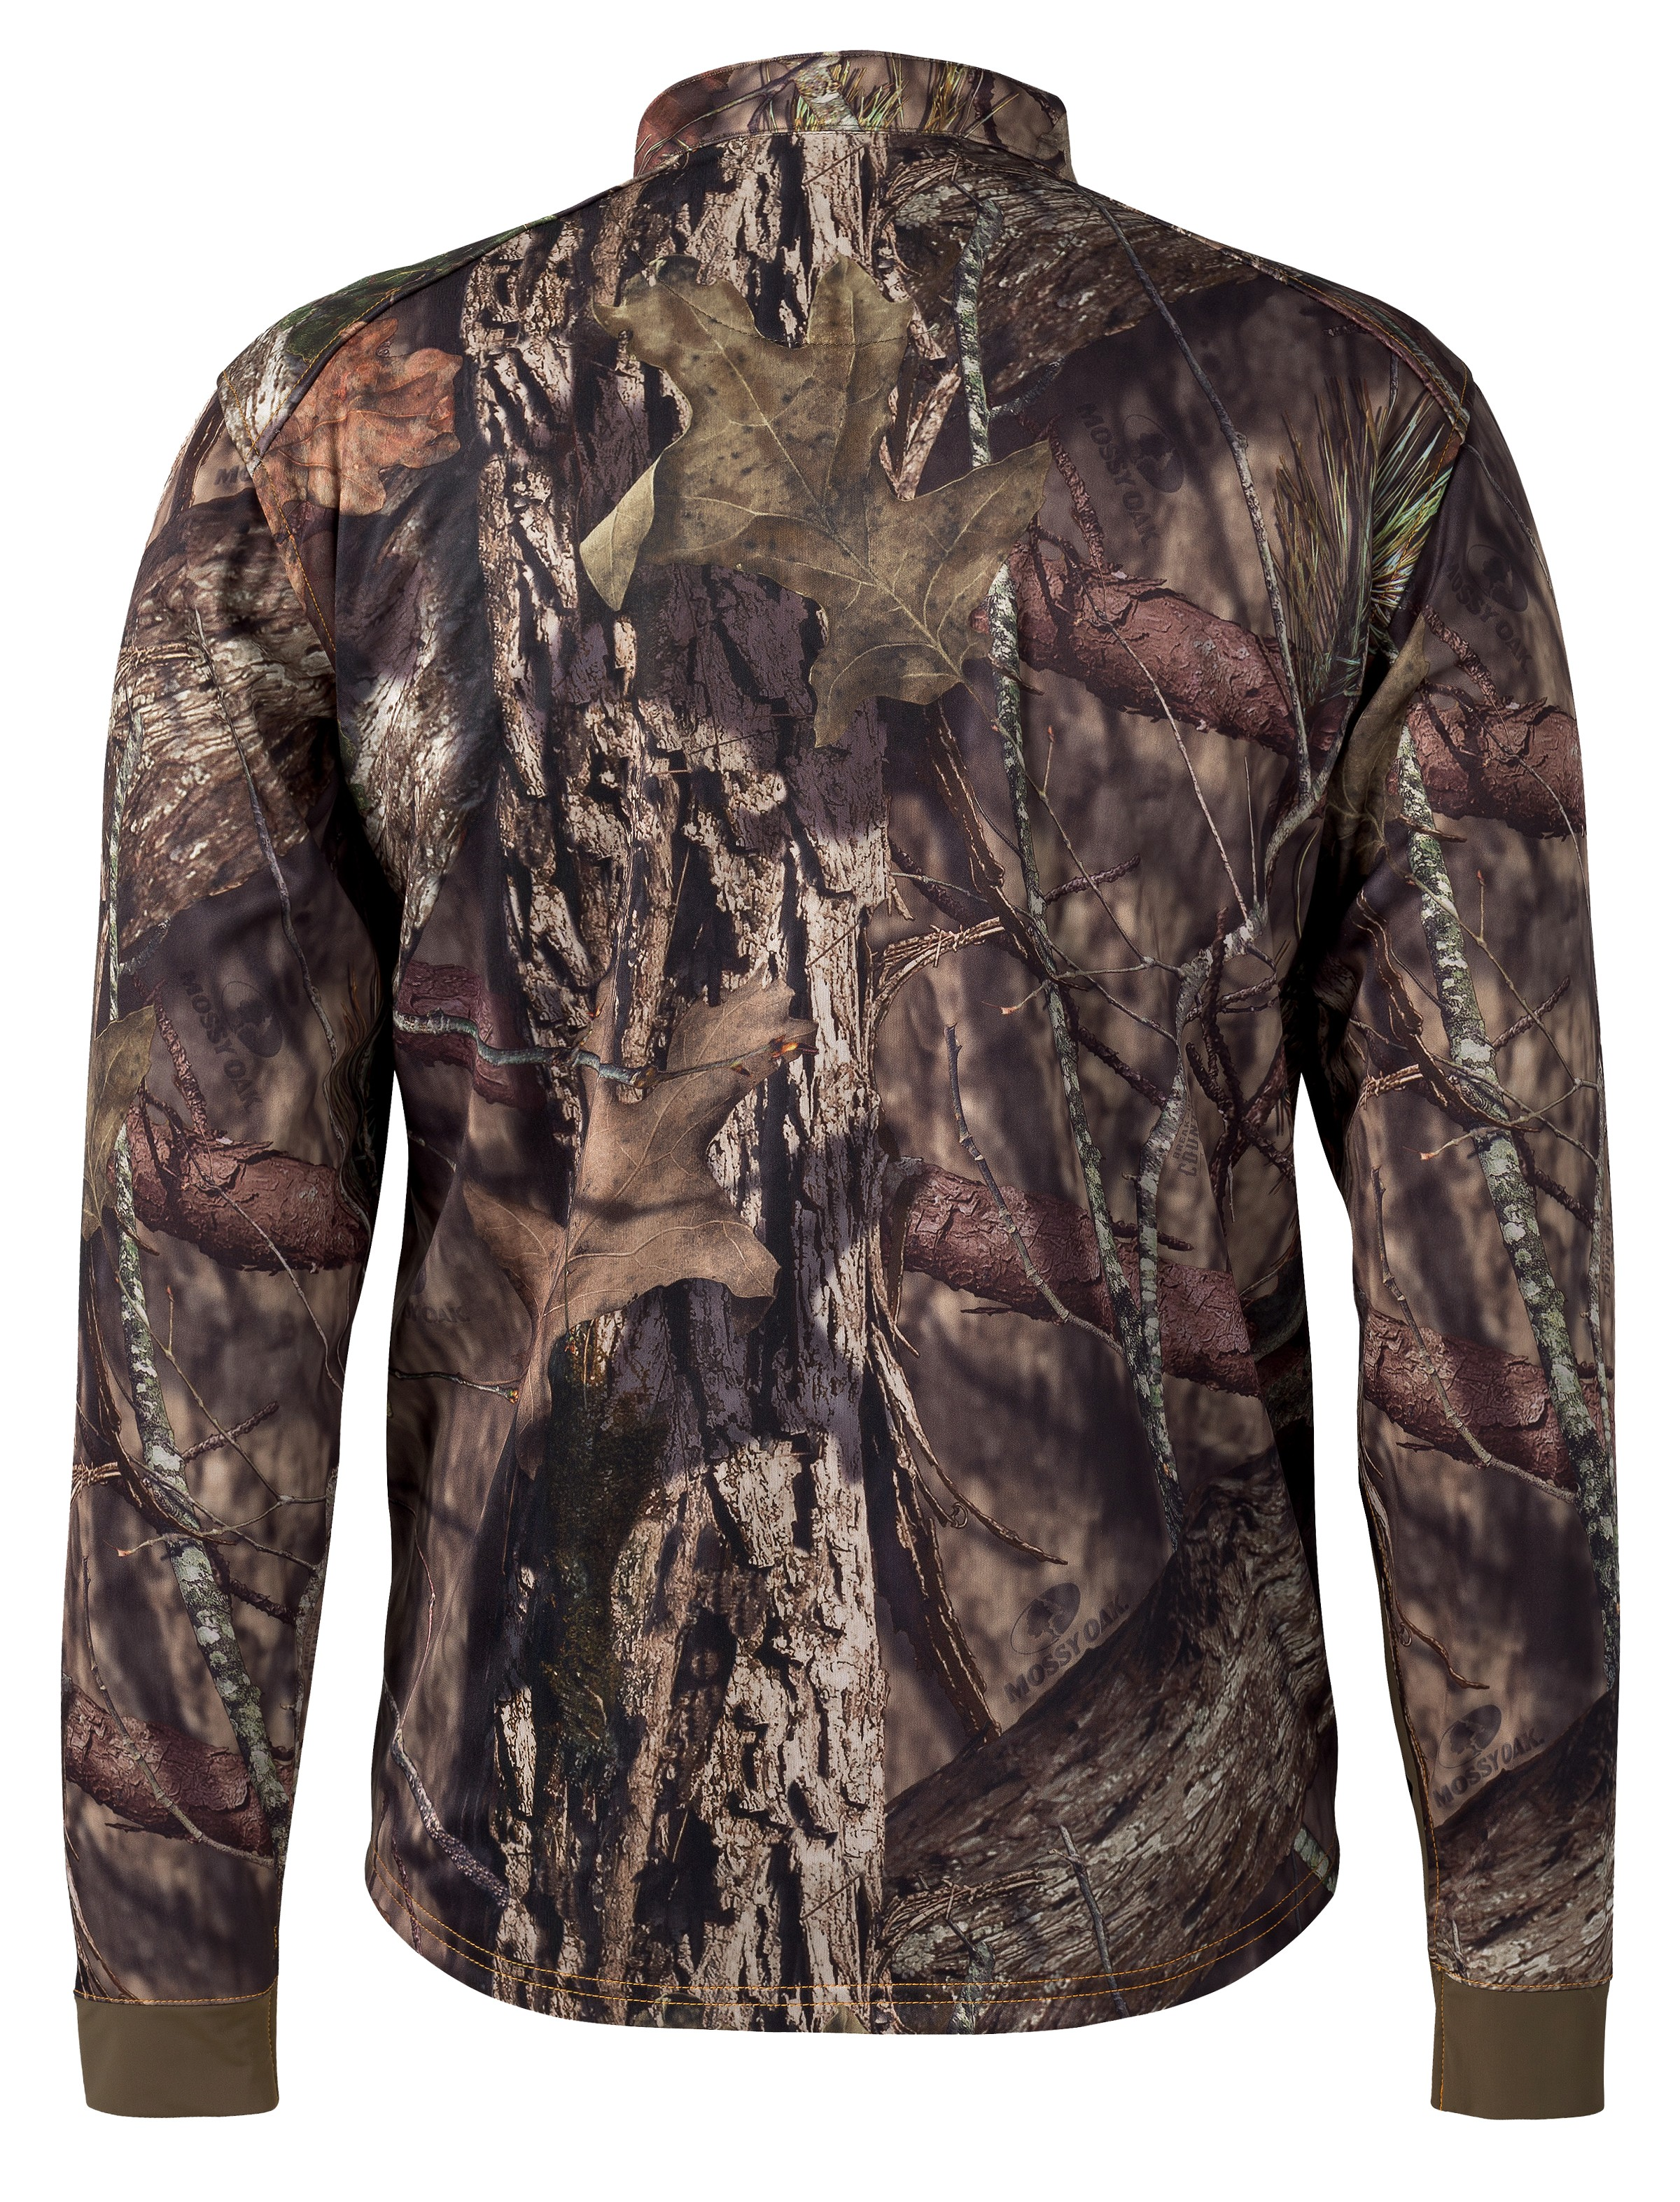 87411-16 Mossy Oak Country Back